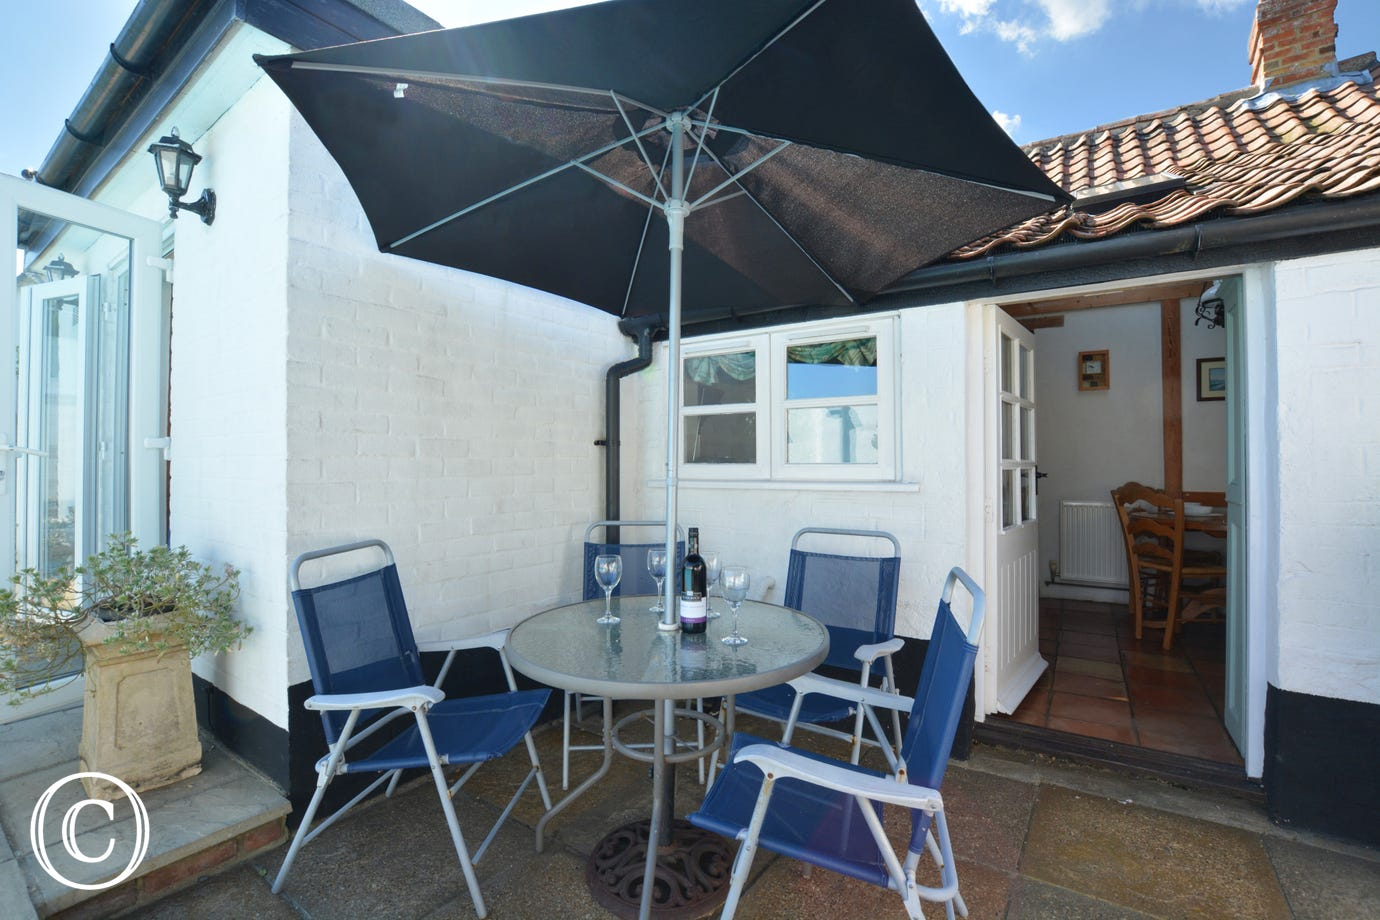 Lovely patio area with furniture and parasol